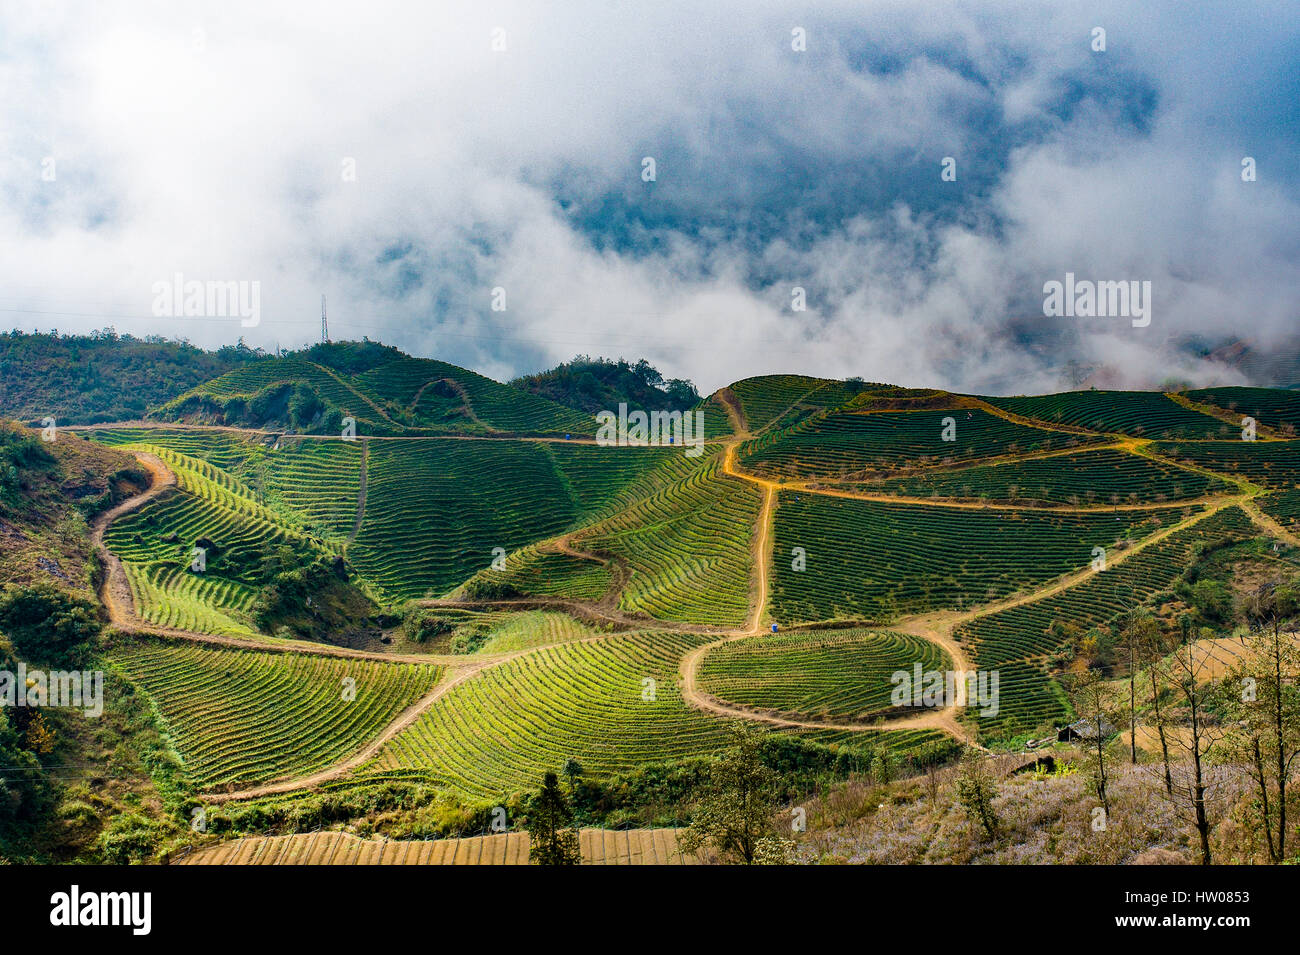 Many terraced rice fields at sunny day in Sapa, Northern Vietnam. The northwest market town of Sapa is colorful - Stock Image